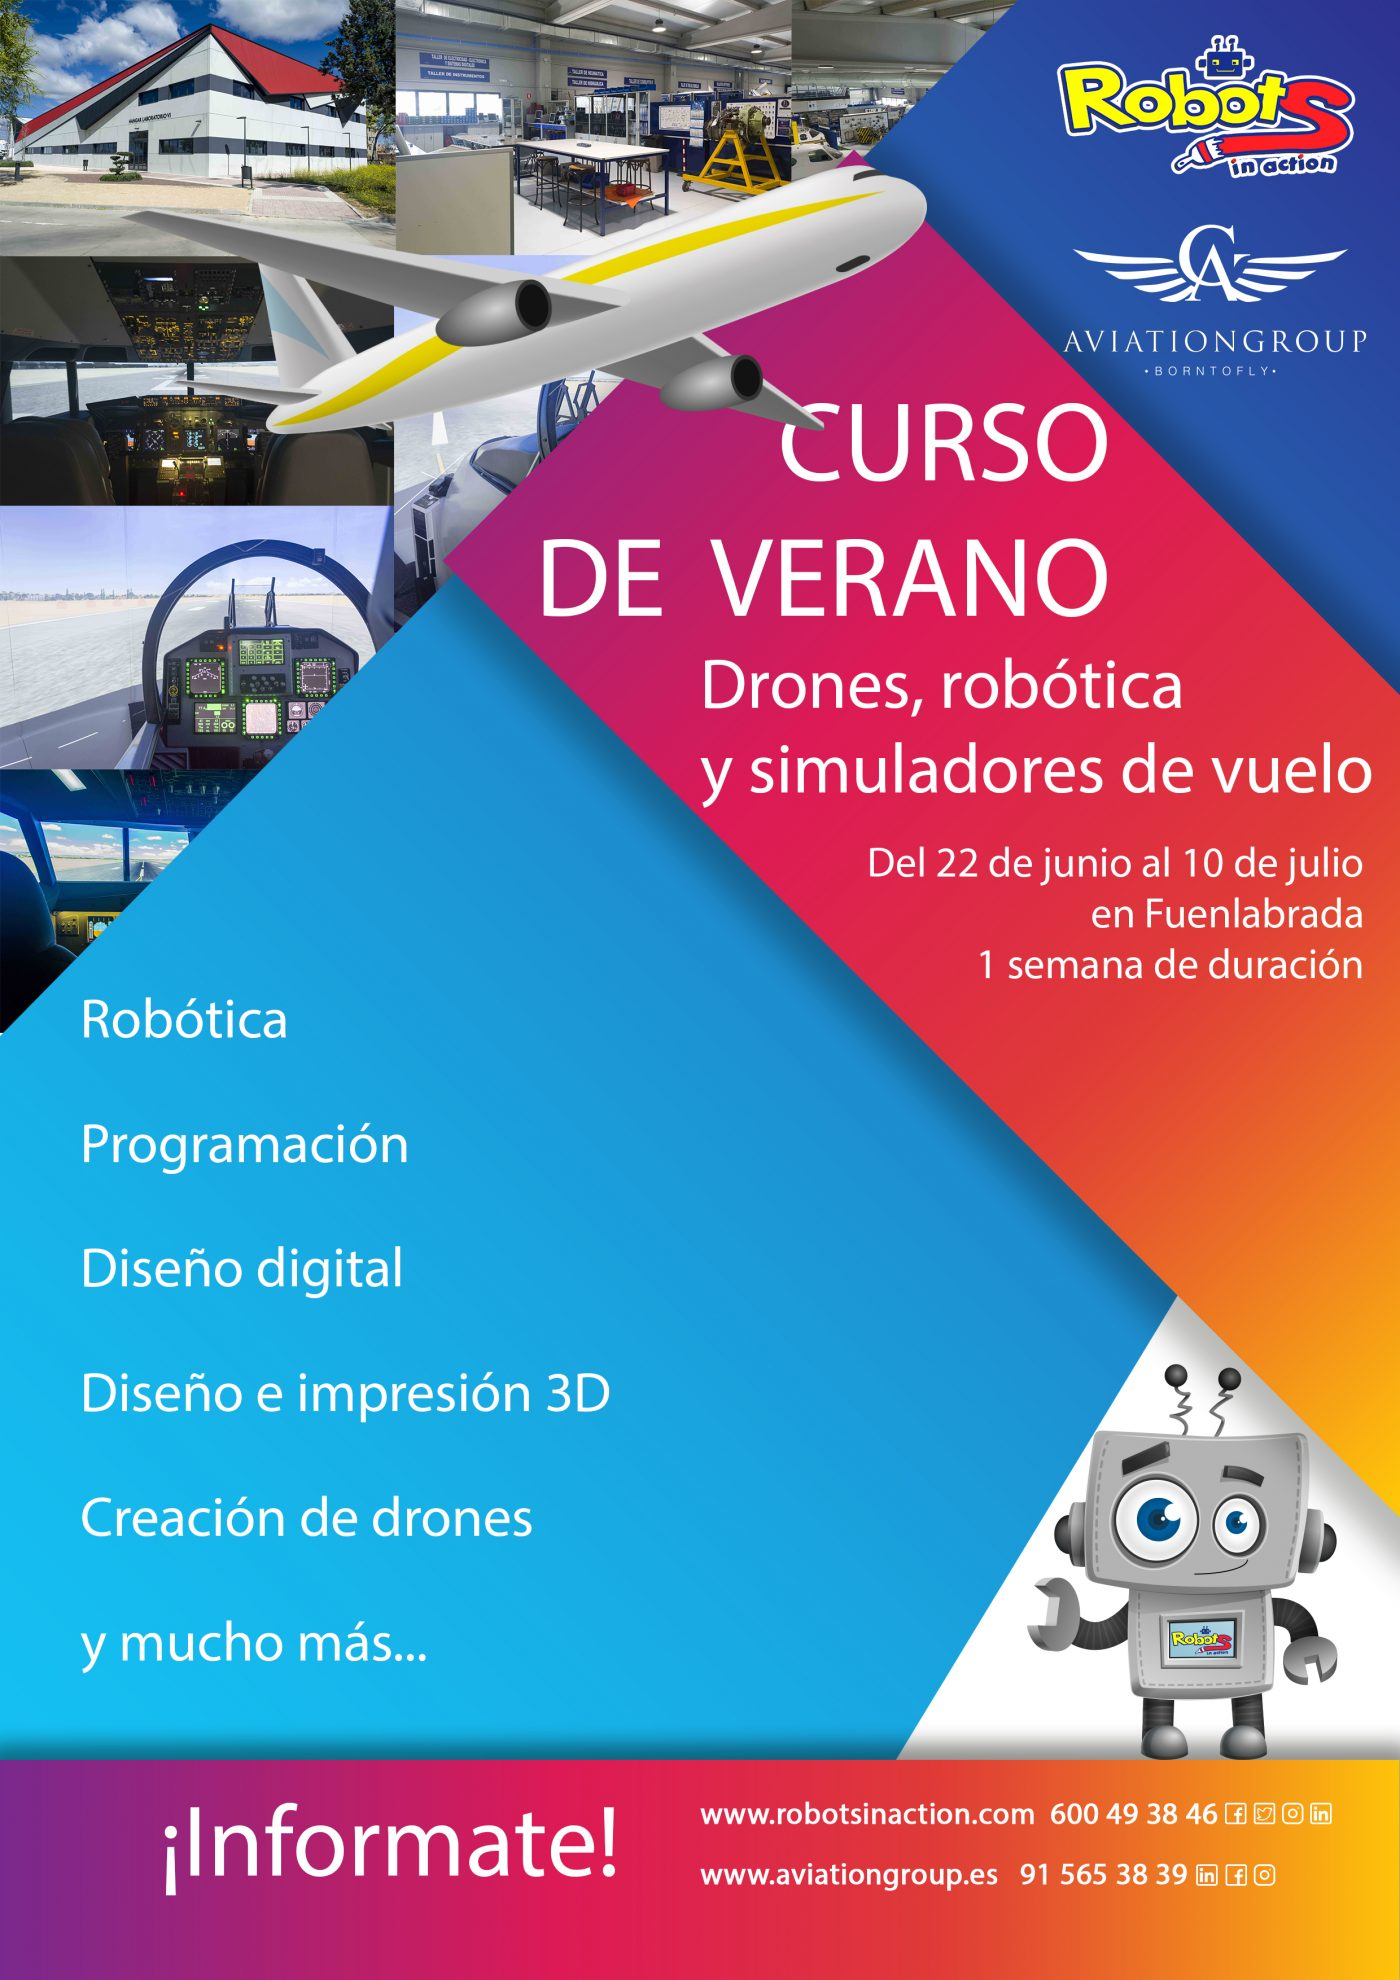 Robots in Action y Aviation Group